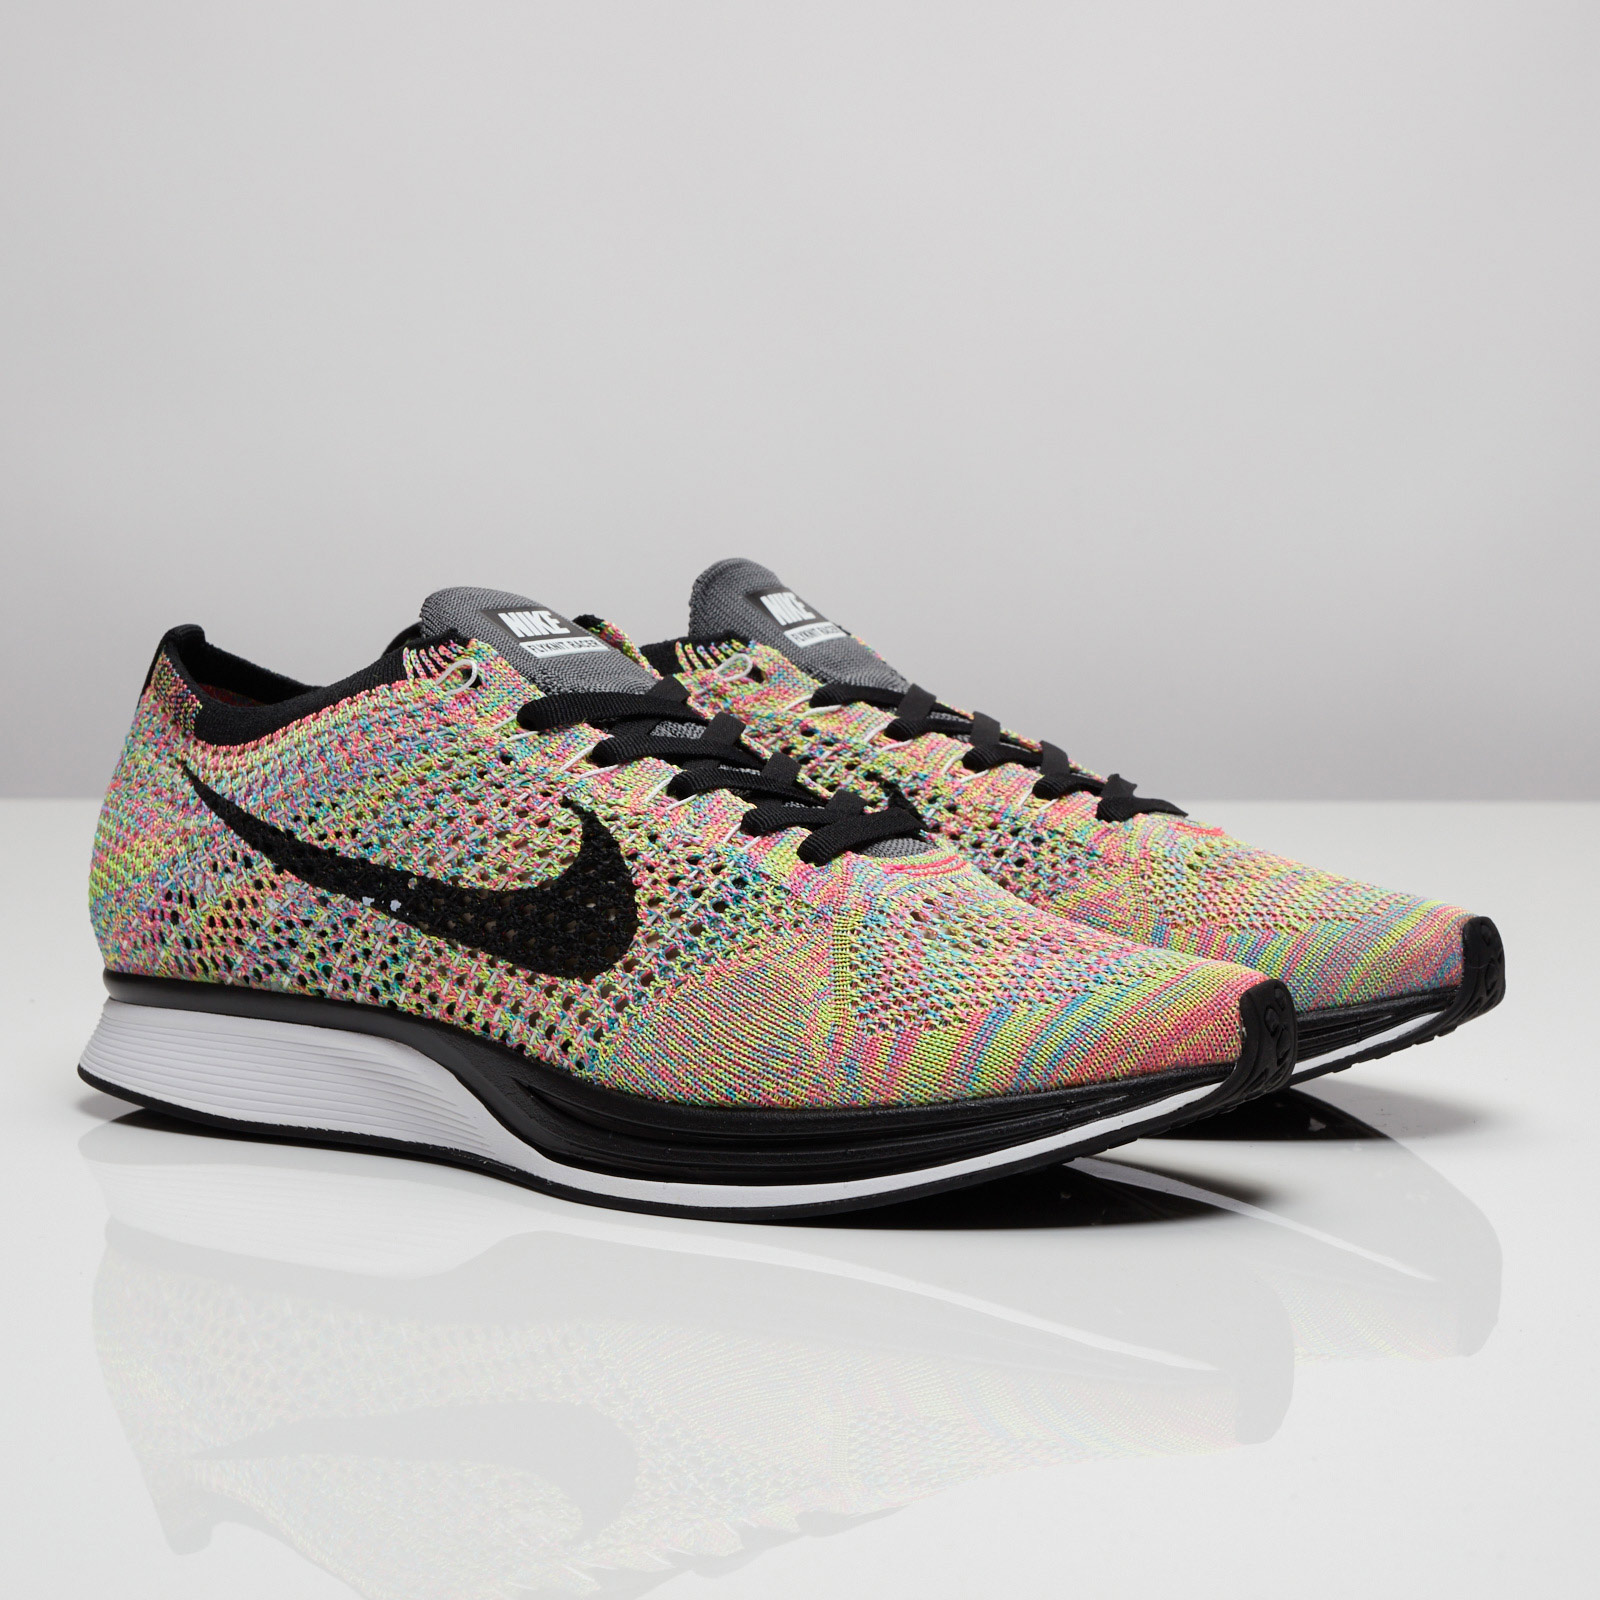 2e9acc6f77f02 cheap nike flyknit racer rainbow 00c97 6b824  where to buy nike flyknit  racer 6f4c1 7df2f